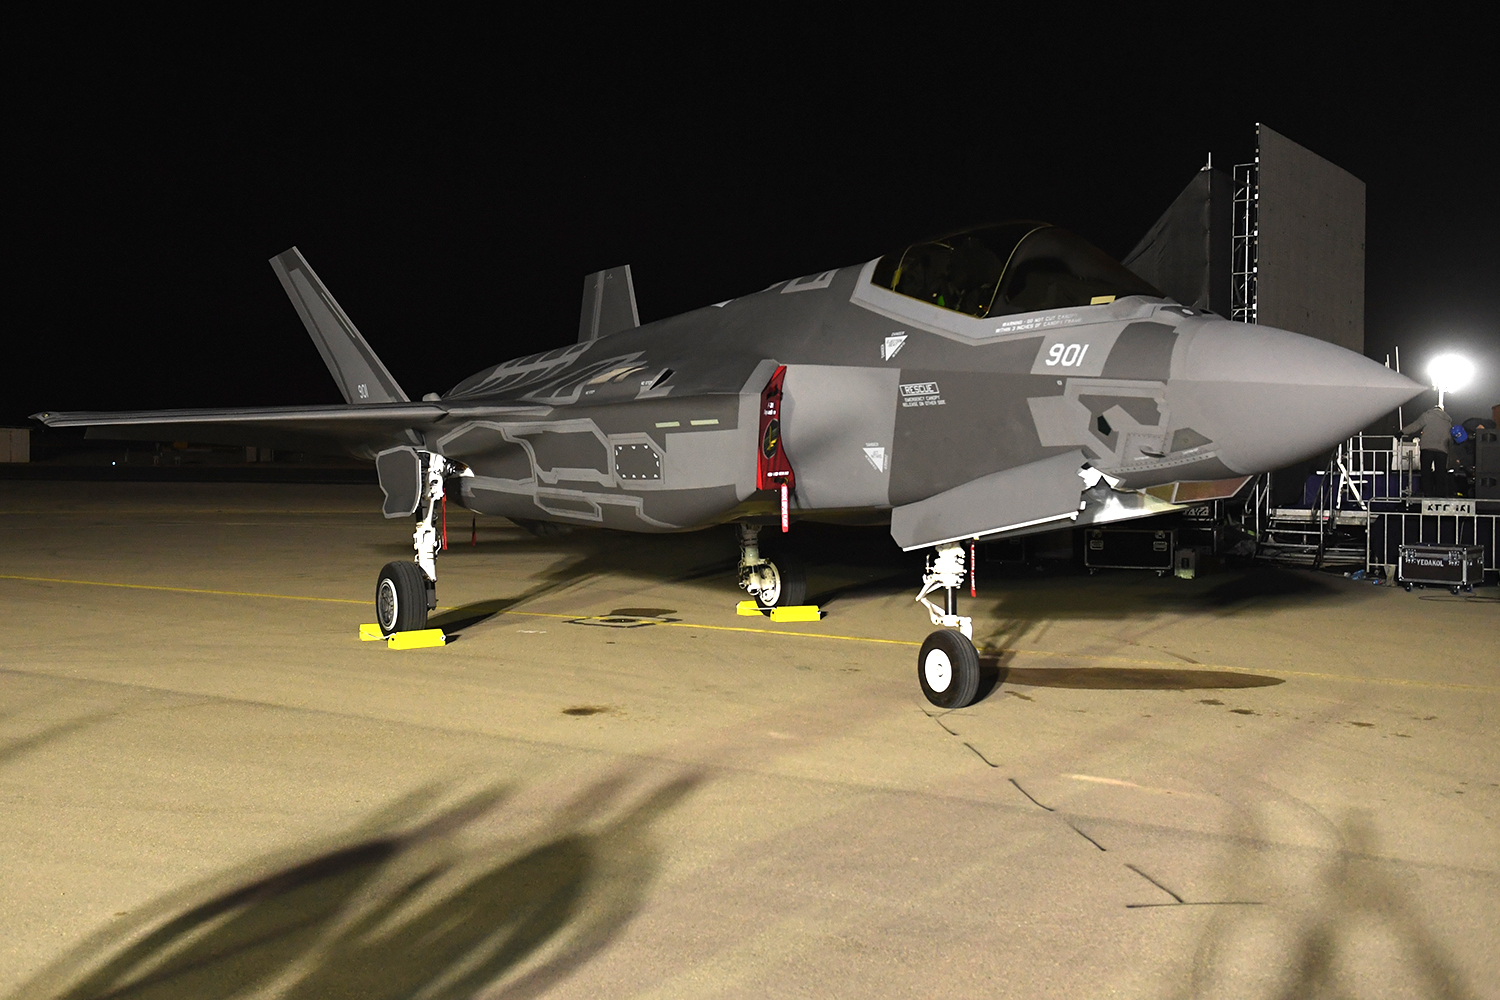 """During a festive ceremony at Nevatim Air Force Base in southern Israel, on Monday, December 12, 2016, Israel received its first two fifth-generation F-35 Joint Strike Fighters, code-named by the Israeli Air Force as """"Adir,"""" (The Mighty One). The ceremony included thousands of invitees, and speeches by Prime Minister Benjamin Netanyahu and U.S. Secretary of Defense Ash Carter."""